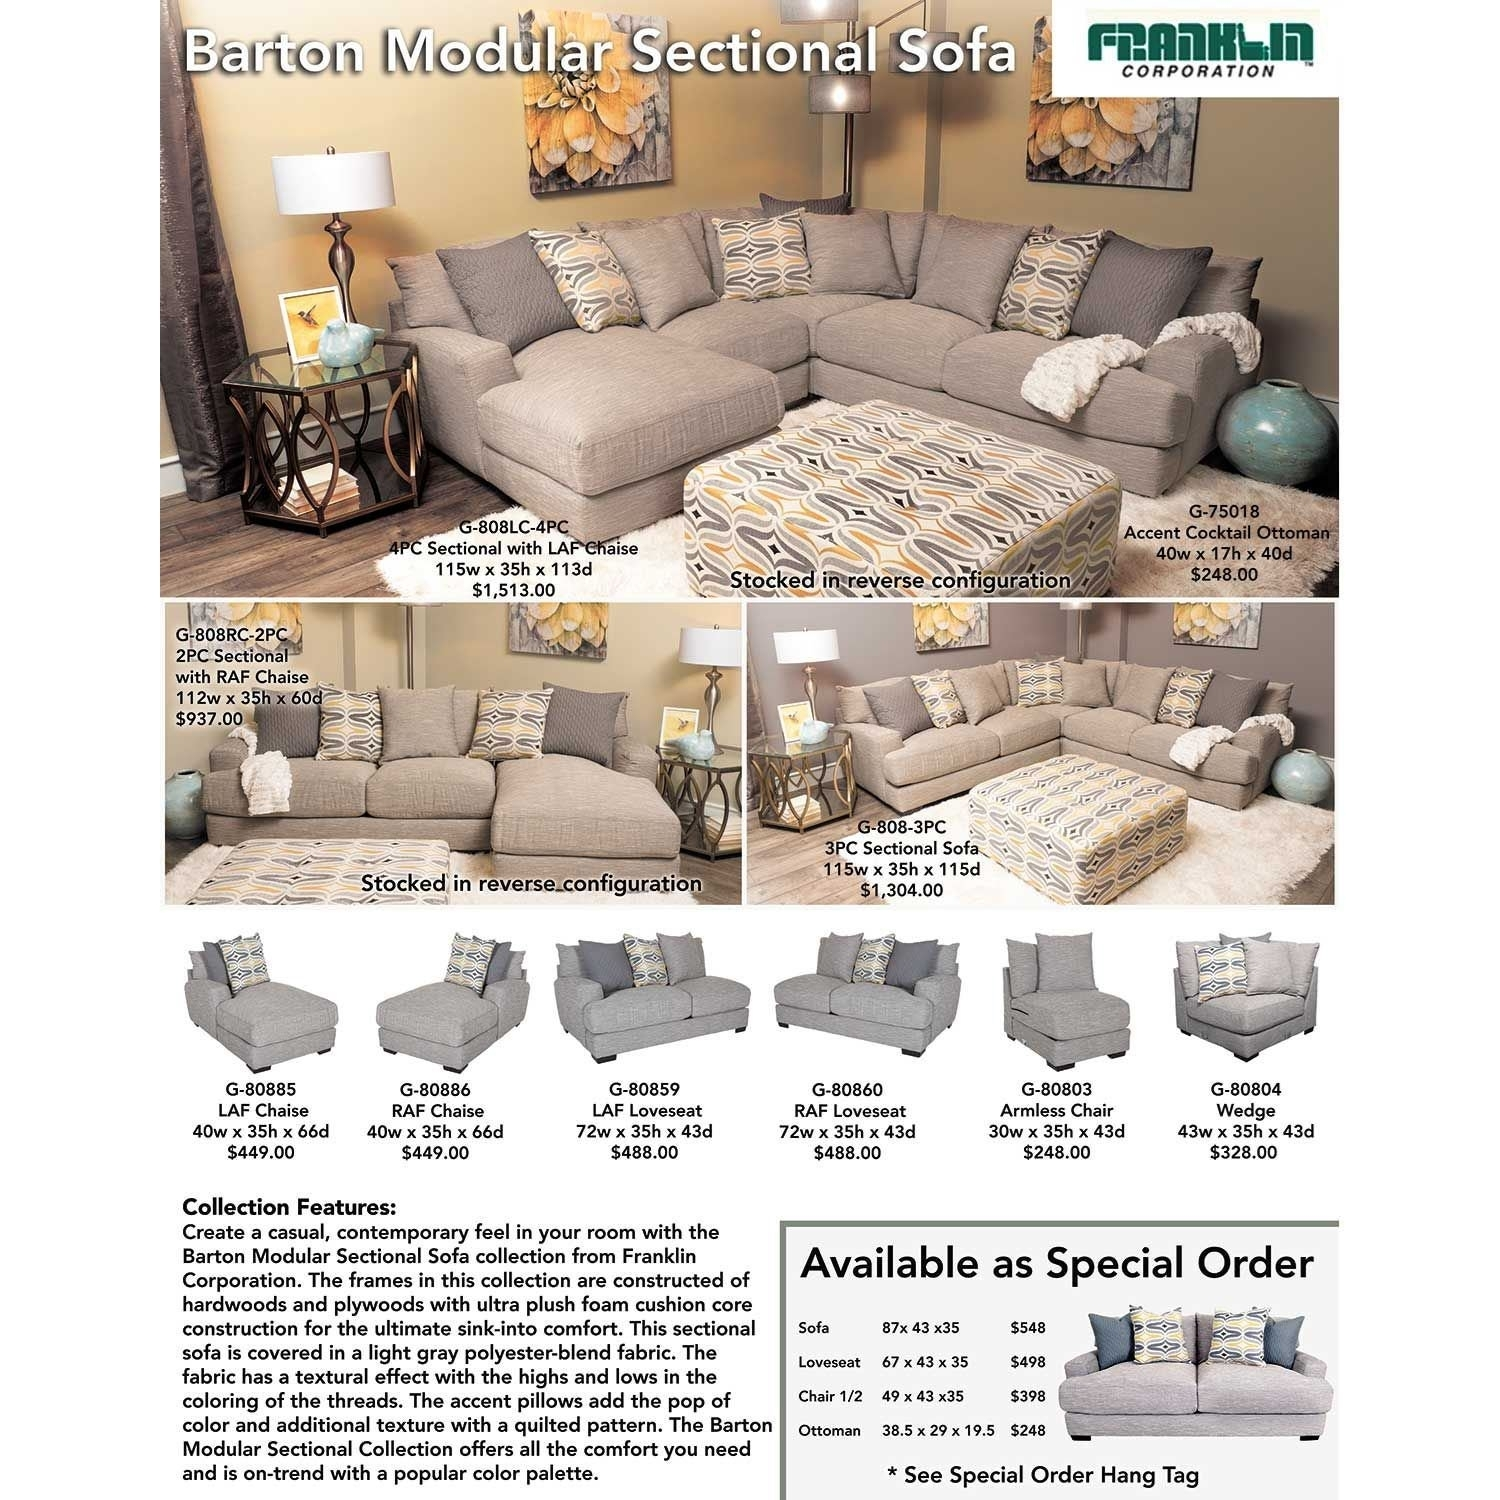 Barton 3Pc Sectional Sofa | G 808 3Pc | 80859 80860 80804 | Franklin For Burton Leather 3 Piece Sectionals With Ottoman (View 21 of 25)